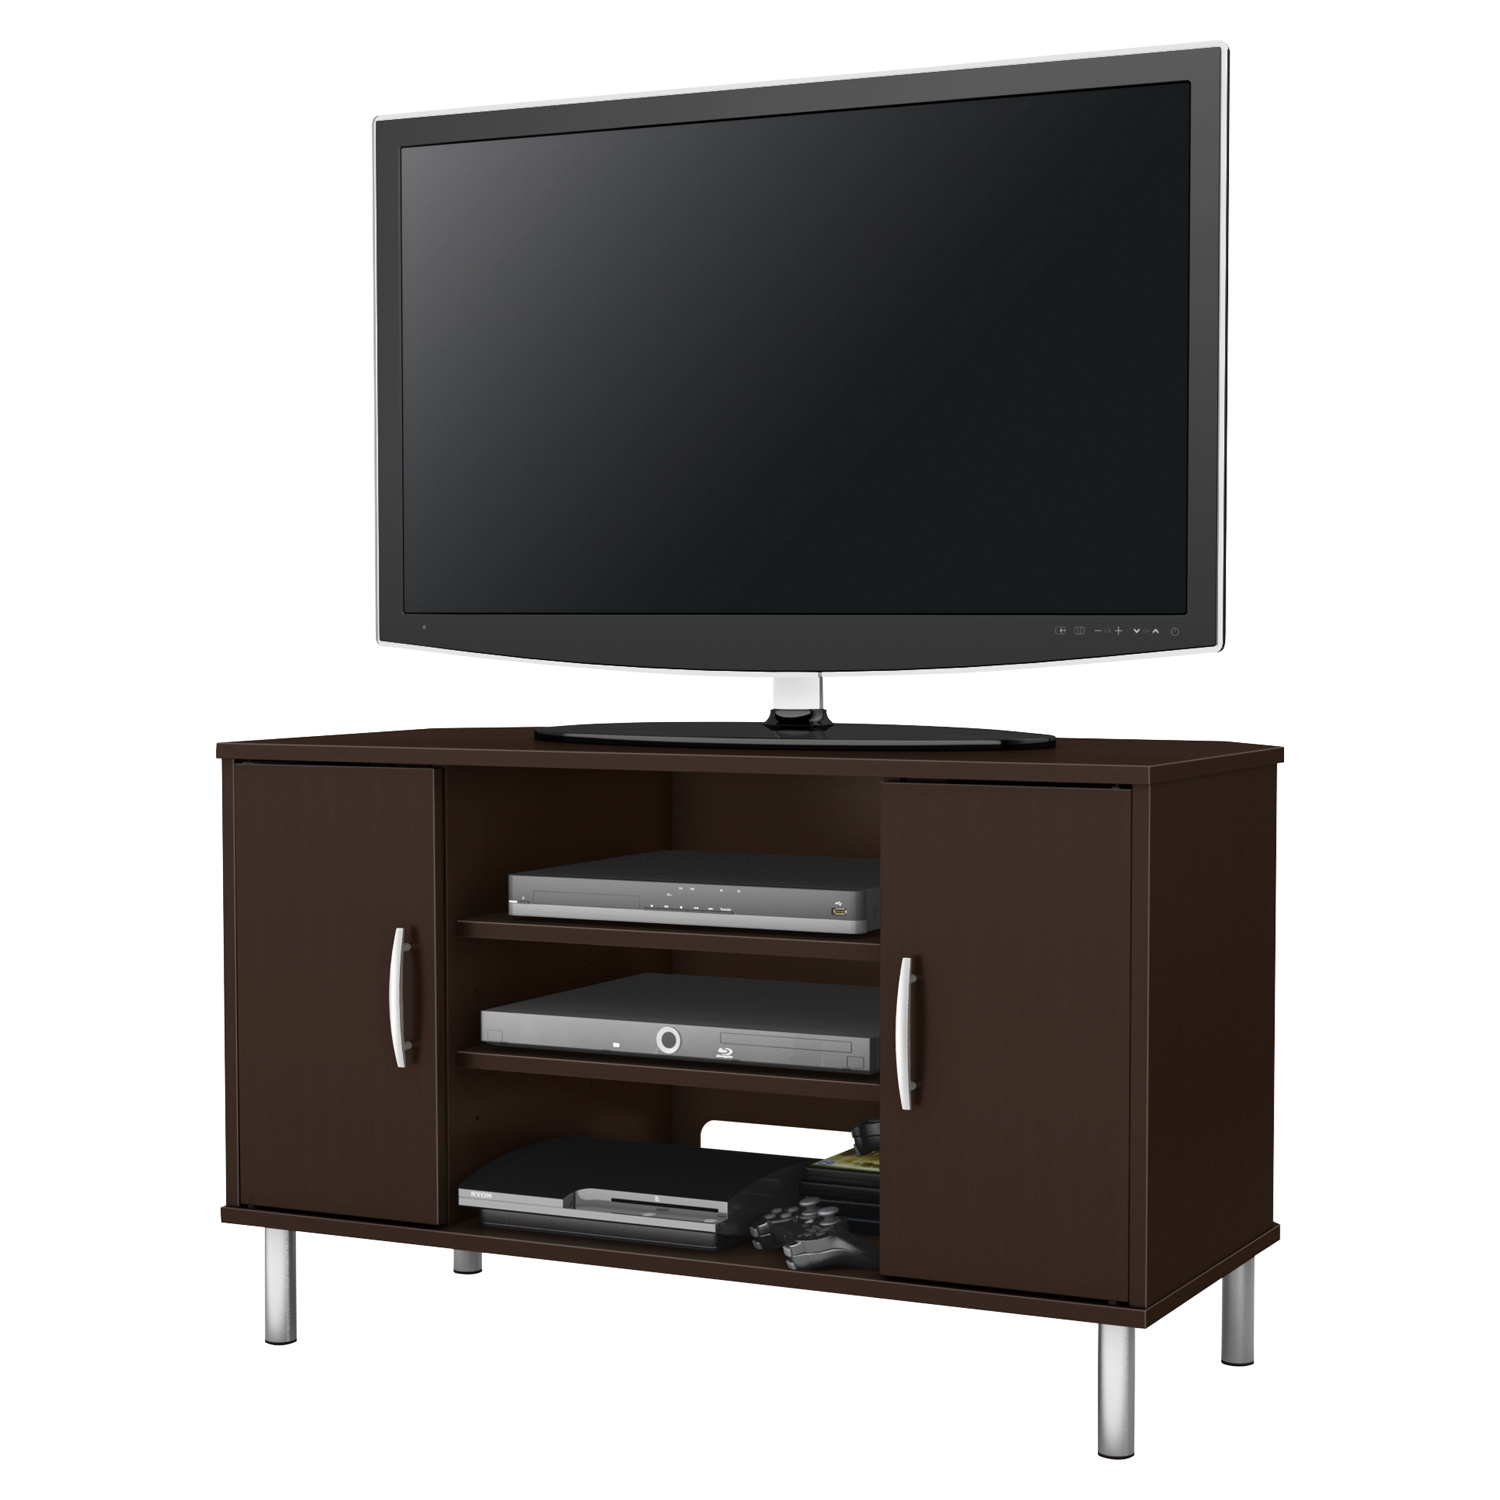 Renta Corner TV Stand - 2 Doors, 3 Shelves, Chocolate - SS-4519690